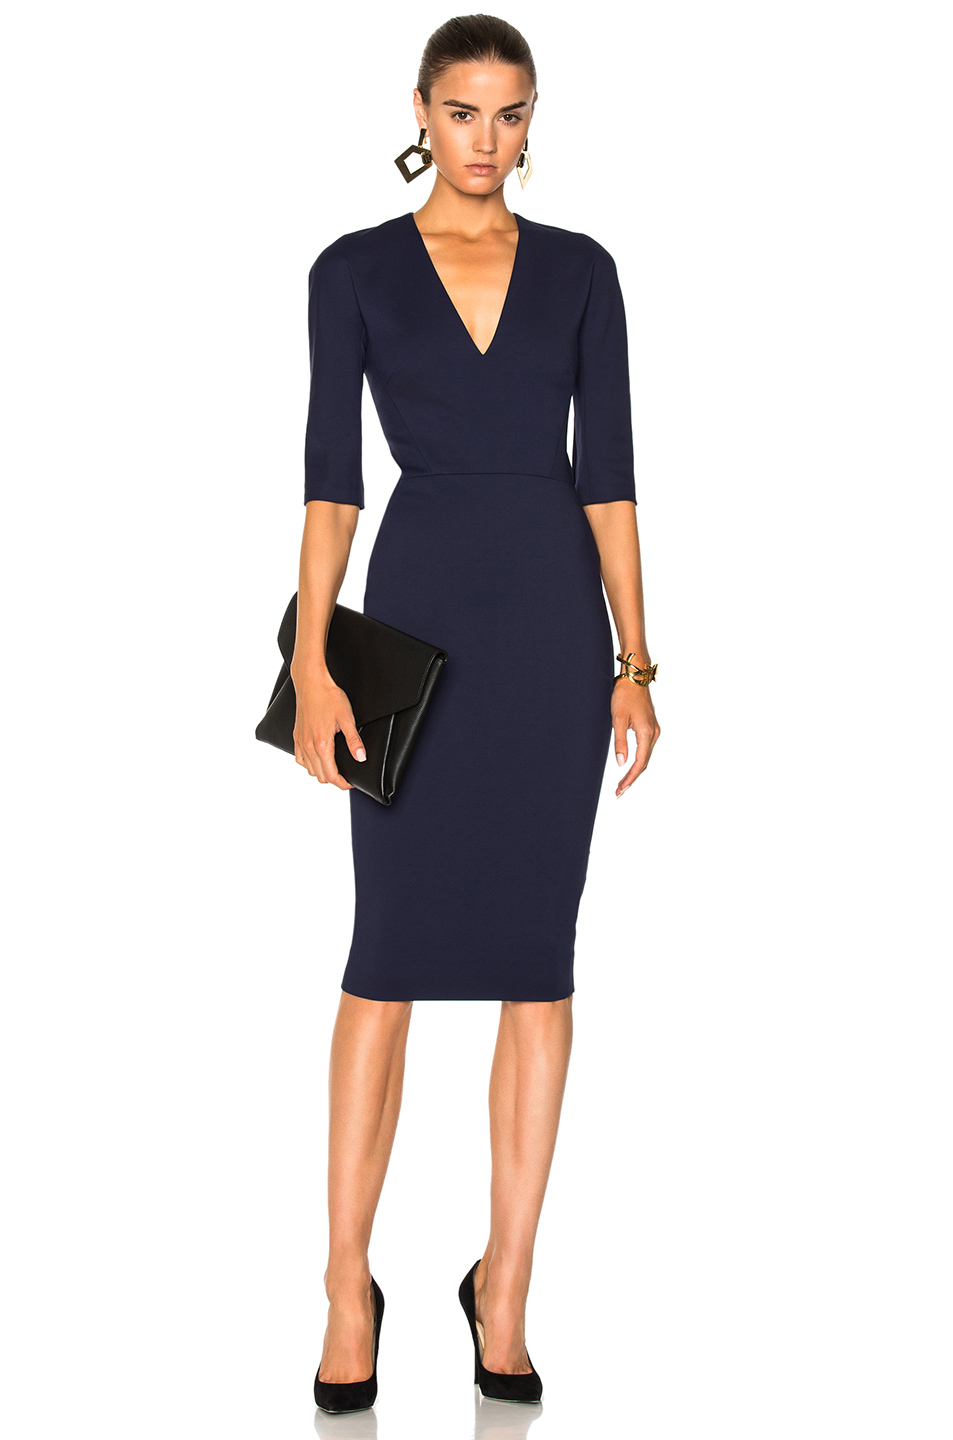 Victoria Beckham Microbrush Cotton Mid Sleeve V Neck Fitted Dress in Blue